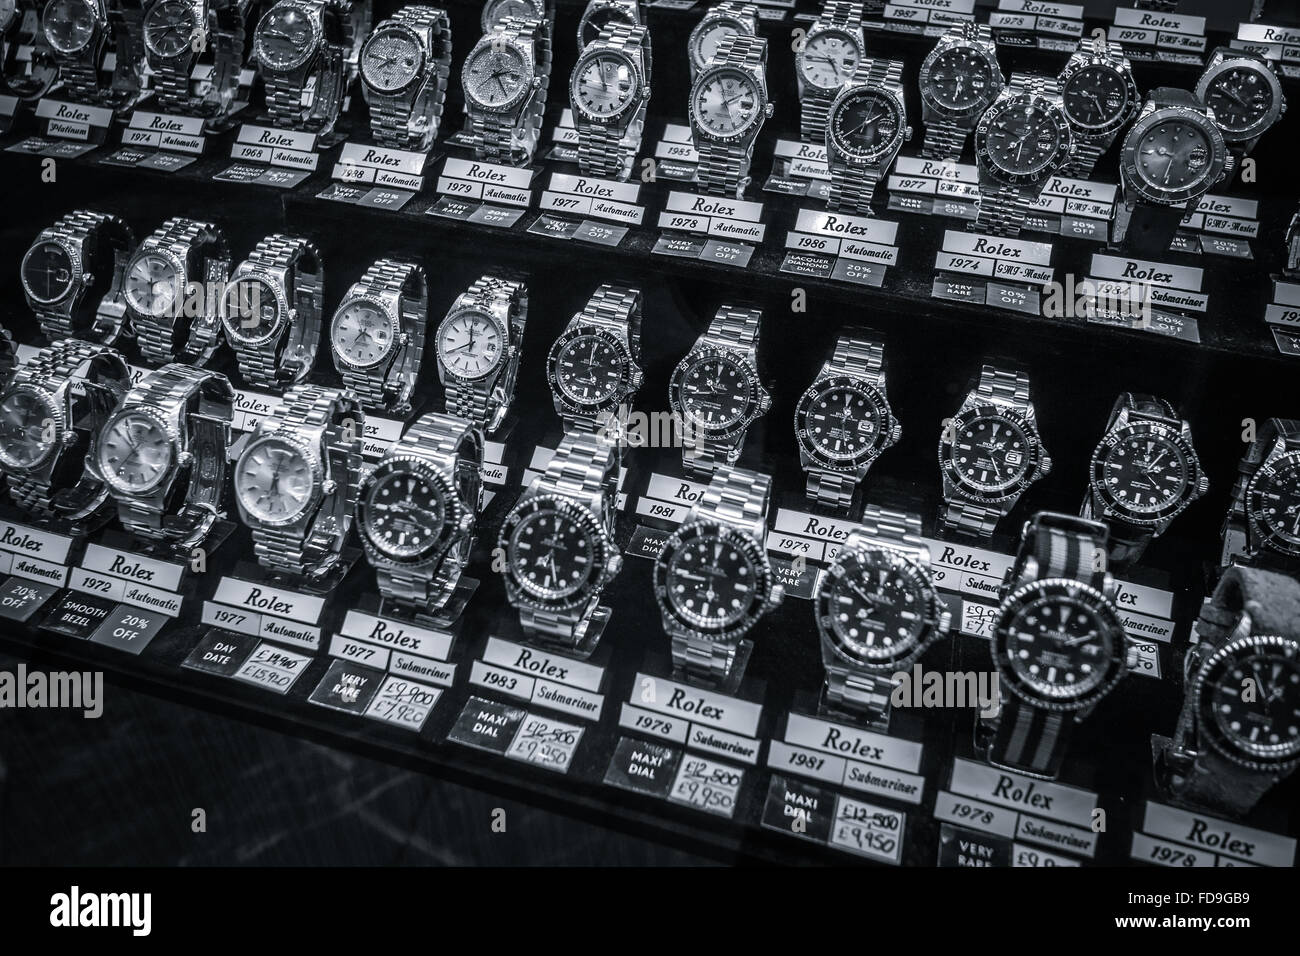 Rolex watches for sale in London shop window - Stock Image